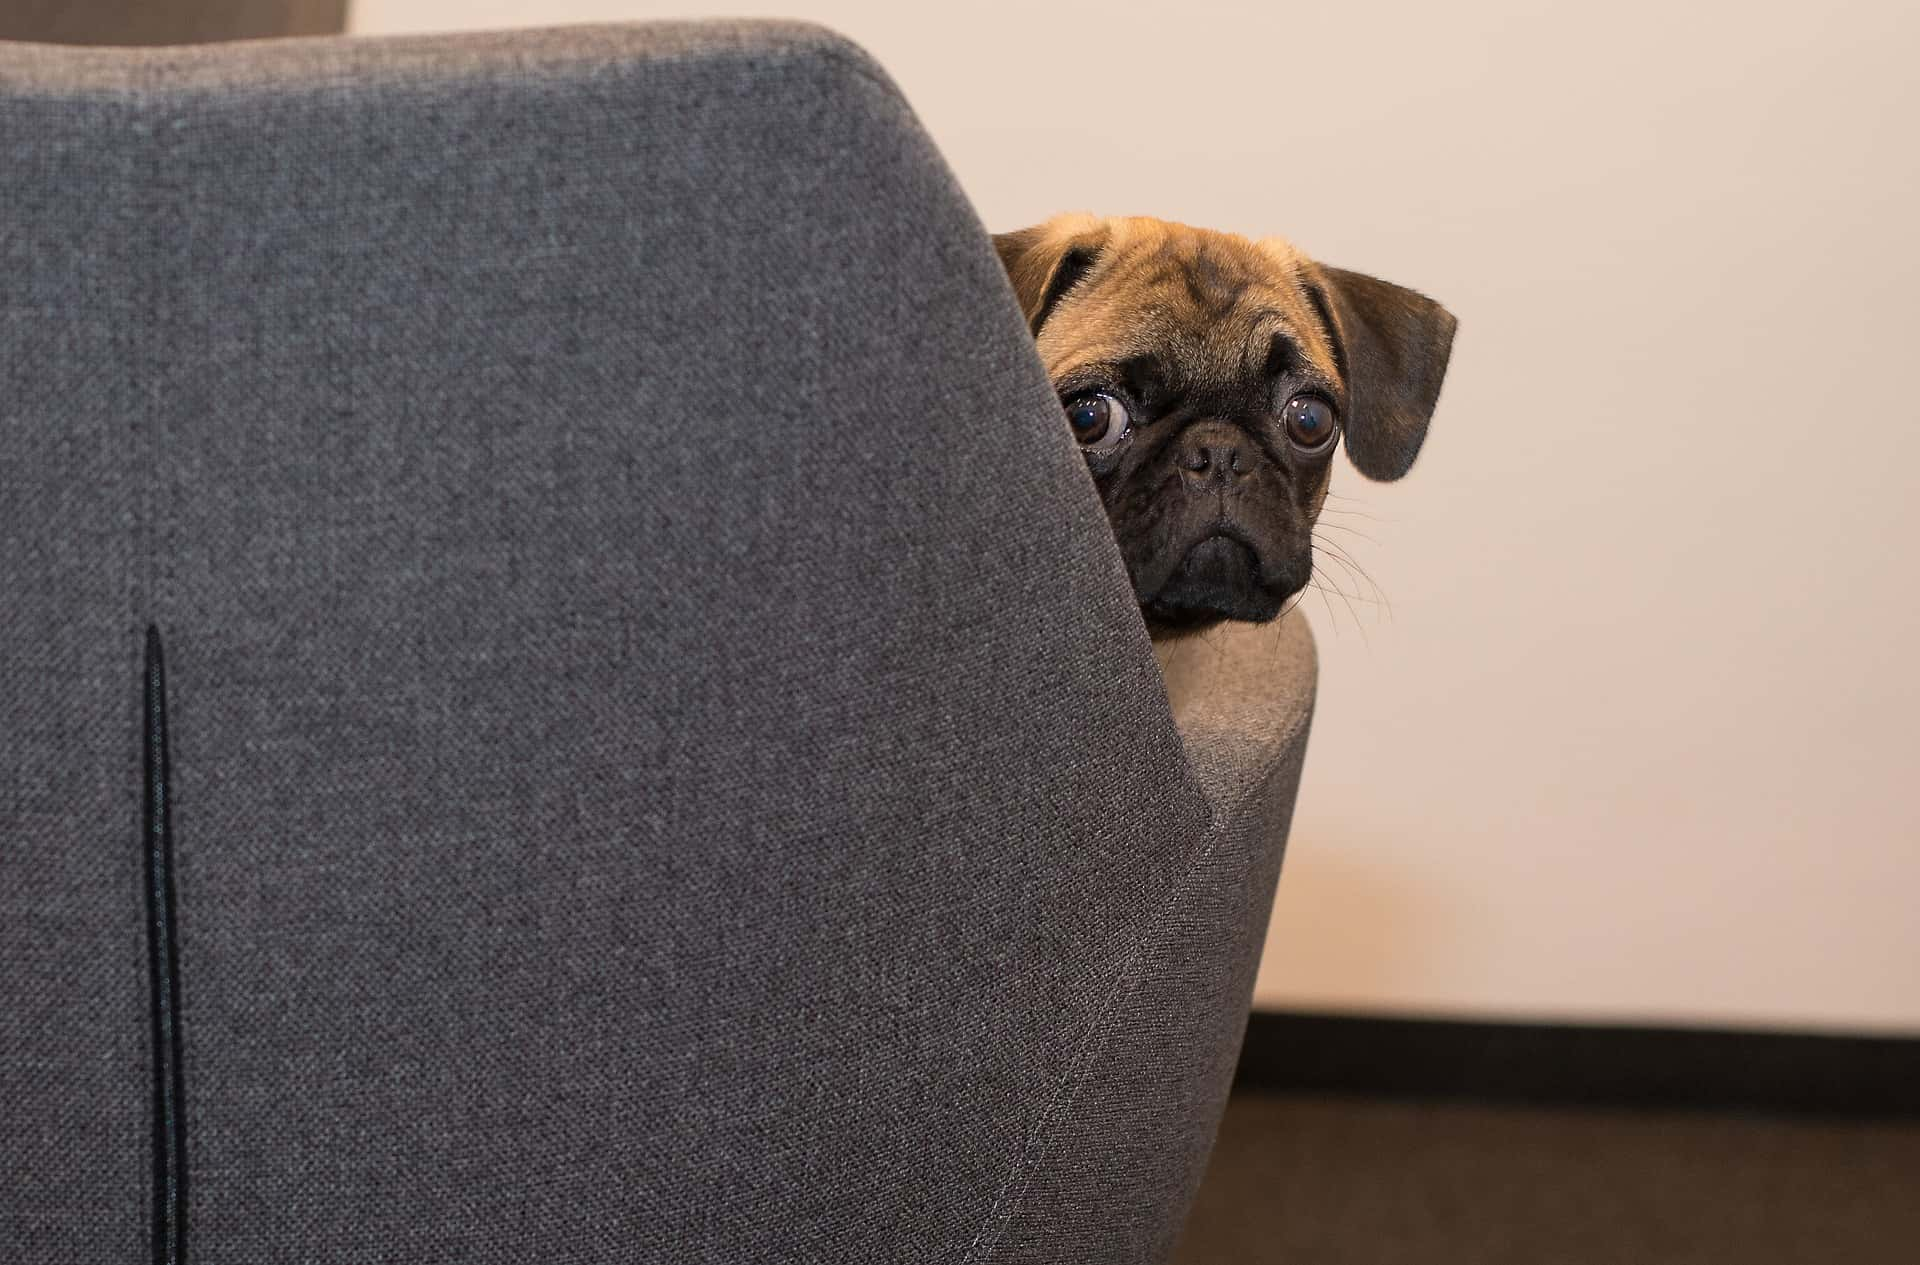 Dogs Fart: Here's What You Need To Know About Dogs Fart